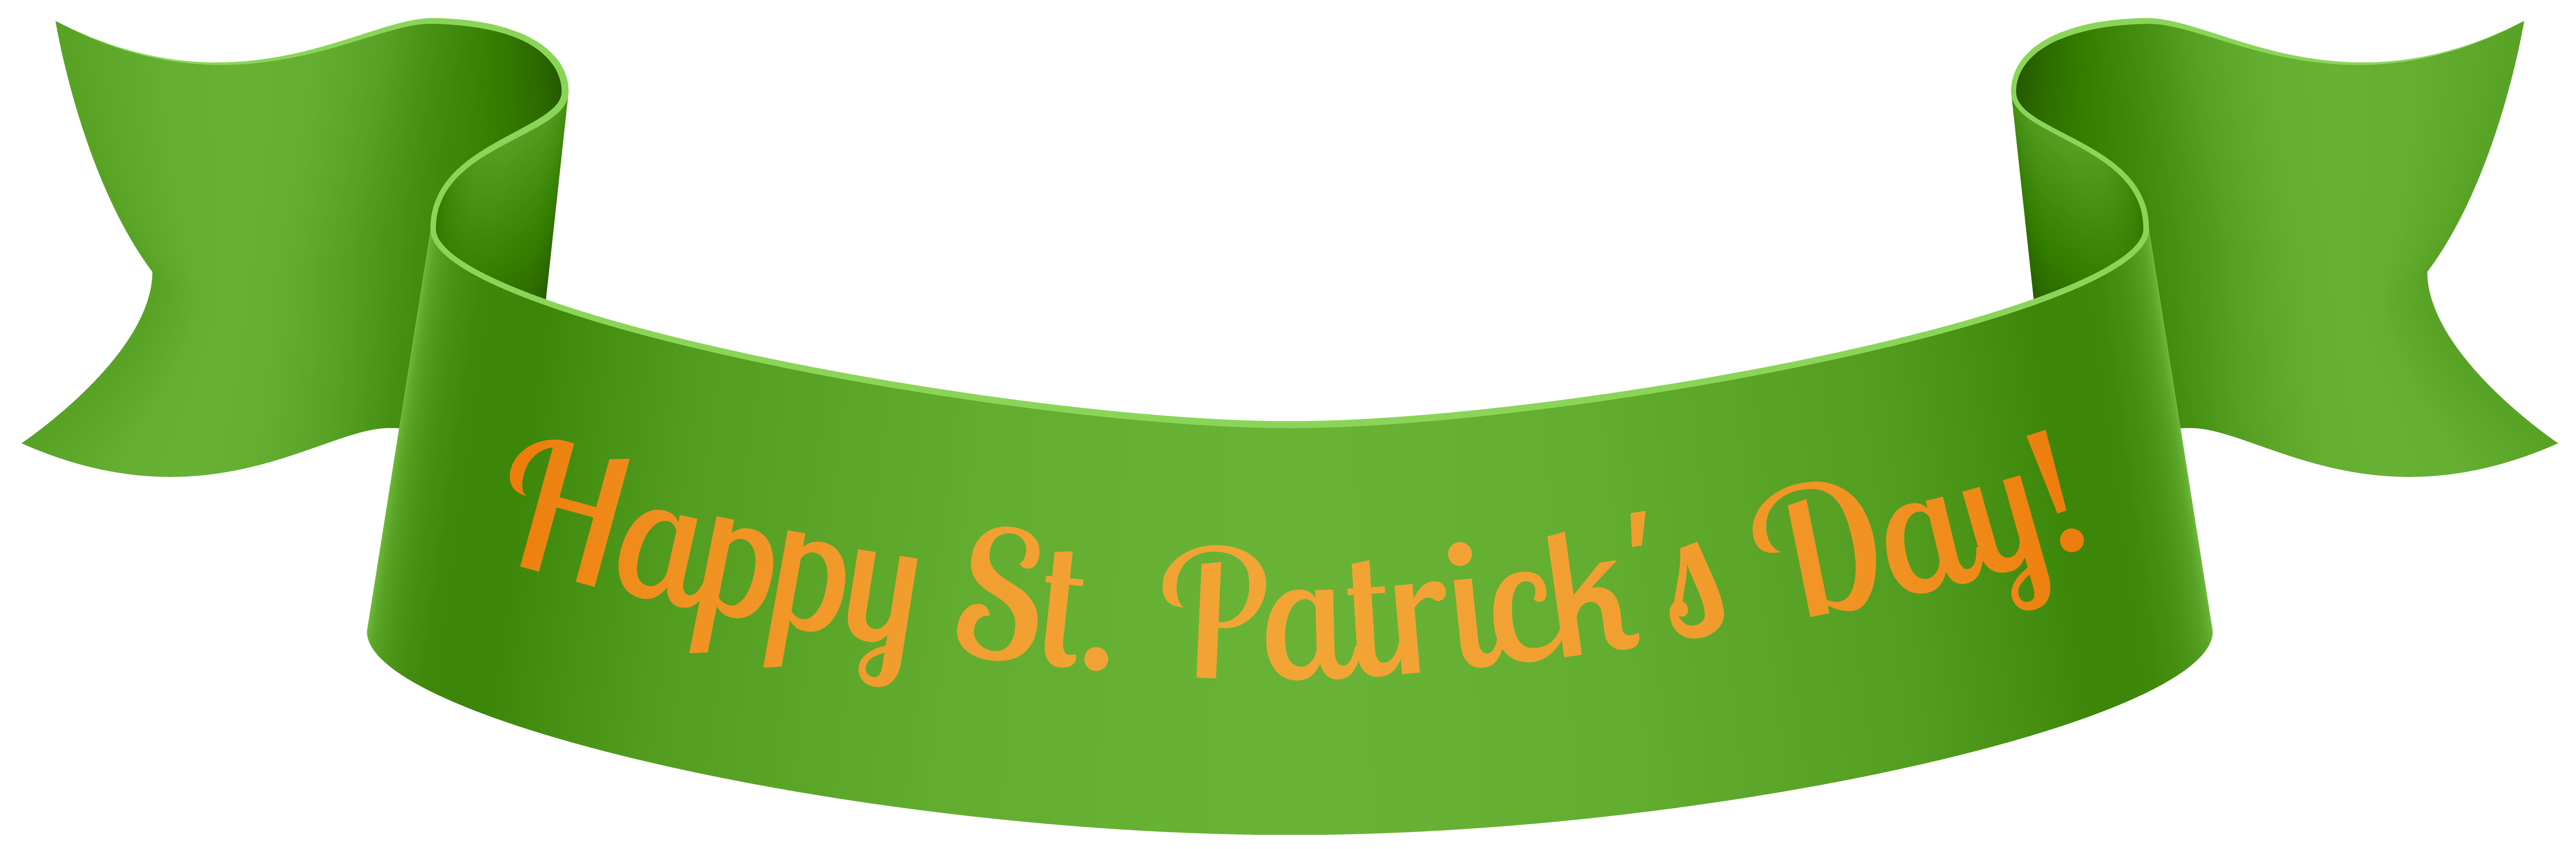 8000x2638 St Patrick's Day Banner Png Clip Artu200b Gallery Yopriceville